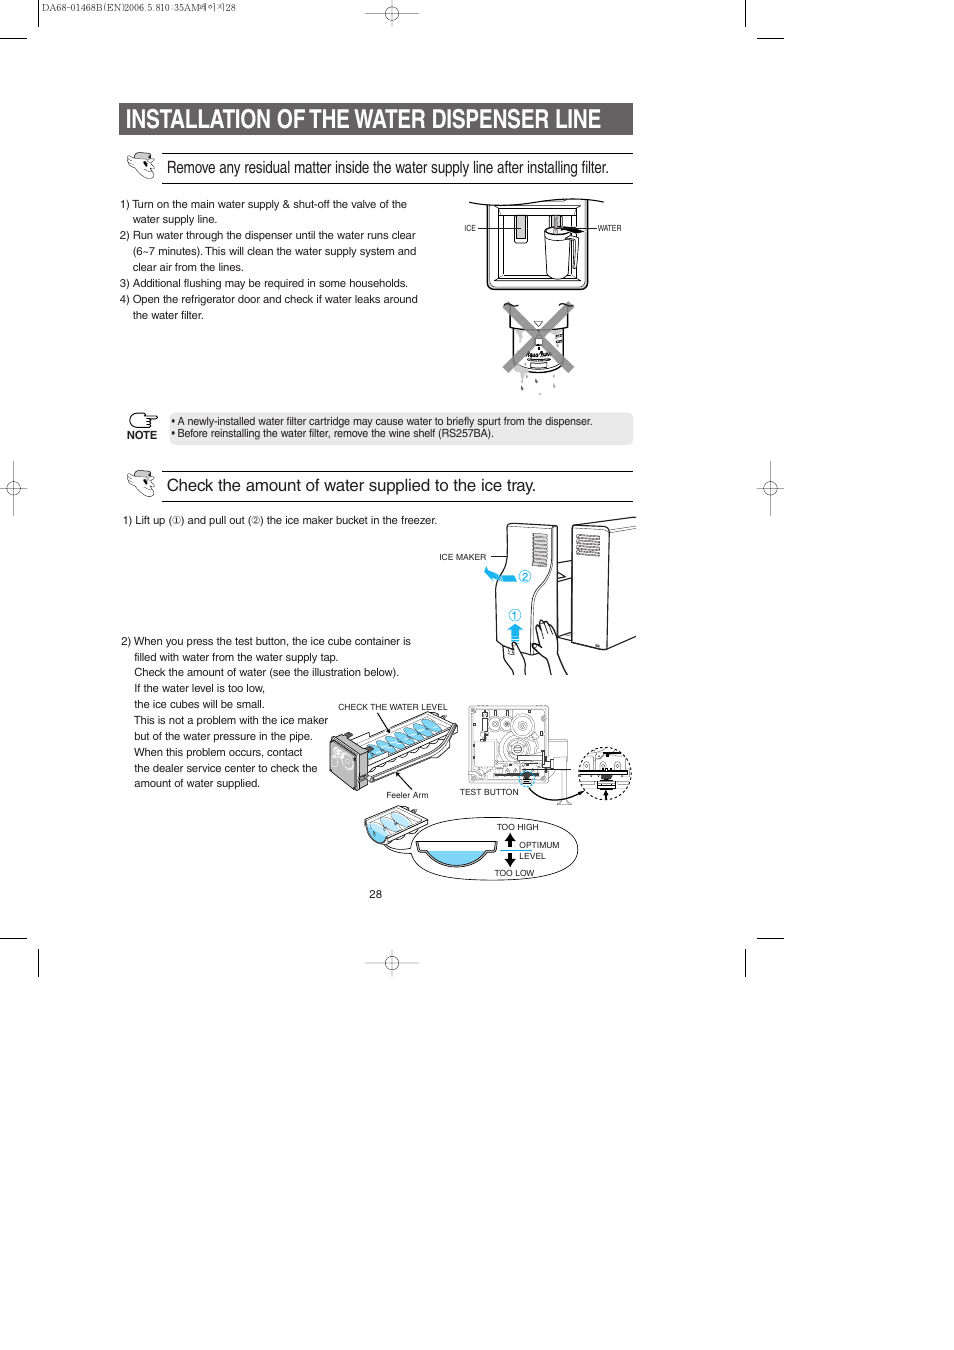 Samsung Rs253baww Refrigerator Wiring Diagram Trusted Schematics Ice Maker Installation Of The Water Dispenser Line Rs257barb Xac Sub Zero